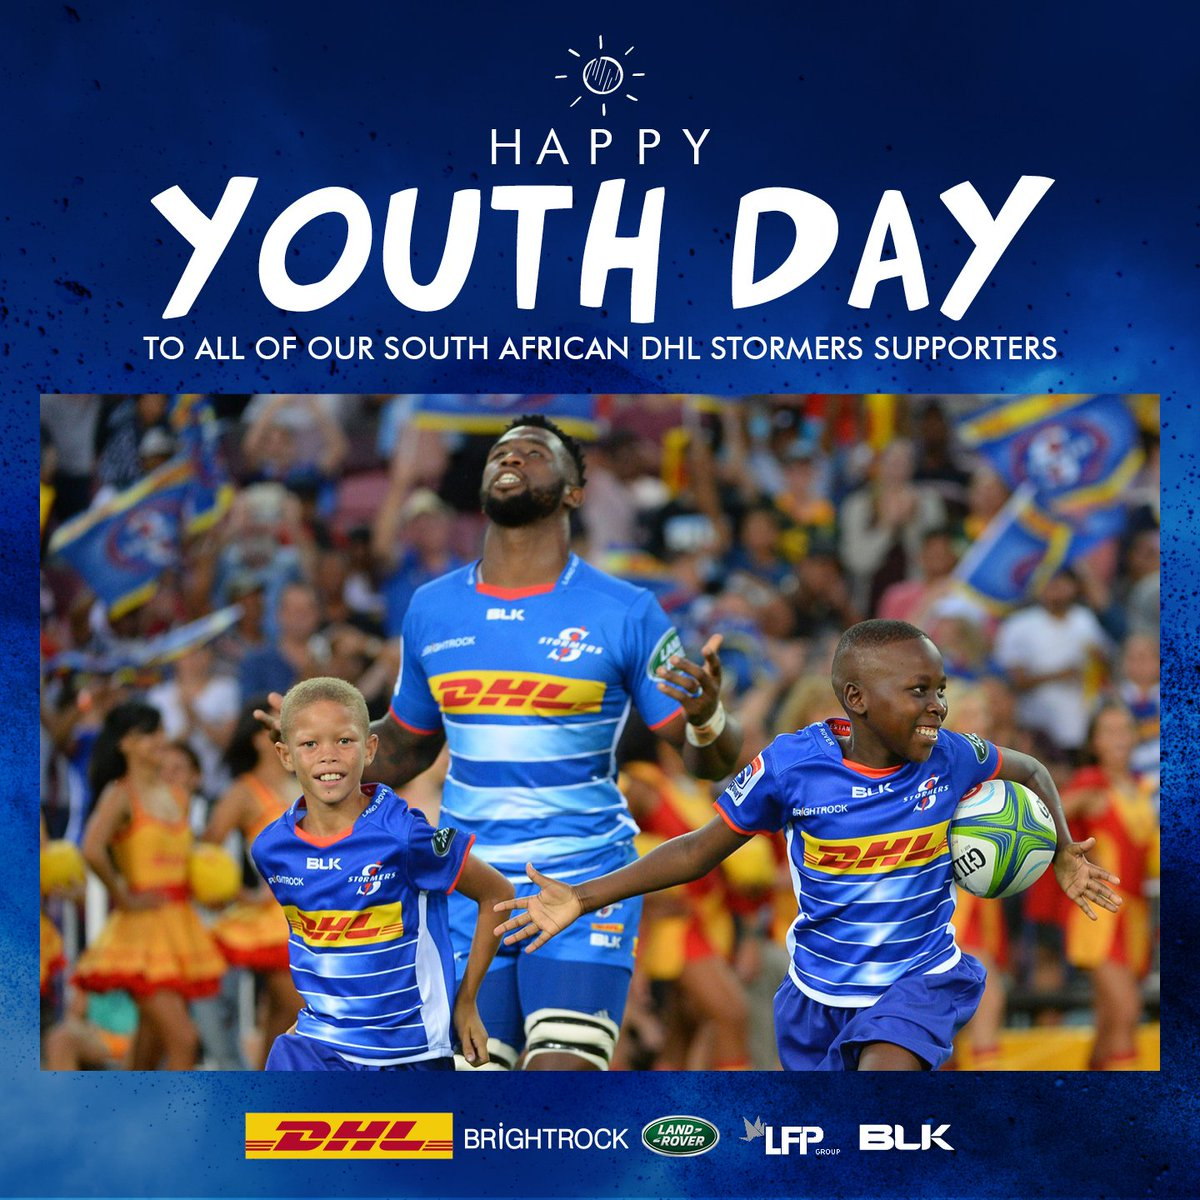 Happy Youth Day South Africa. Heres to a bright future. #iamastormer